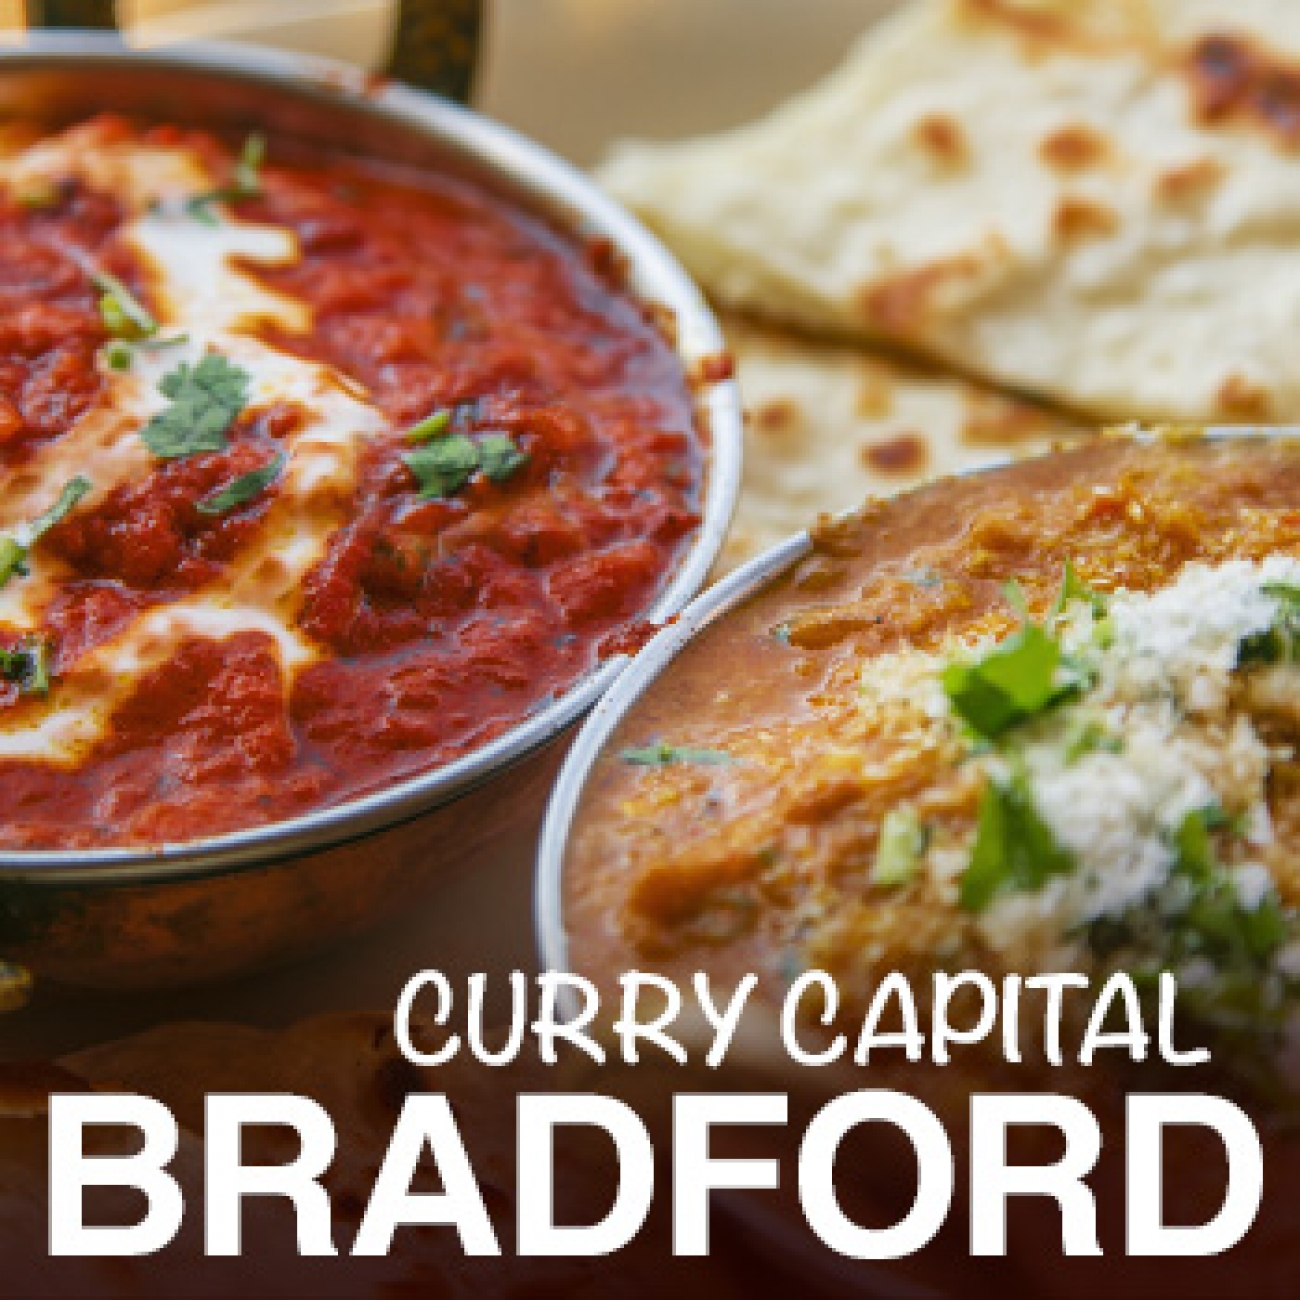 Bradford - The Curry Capital of the UK